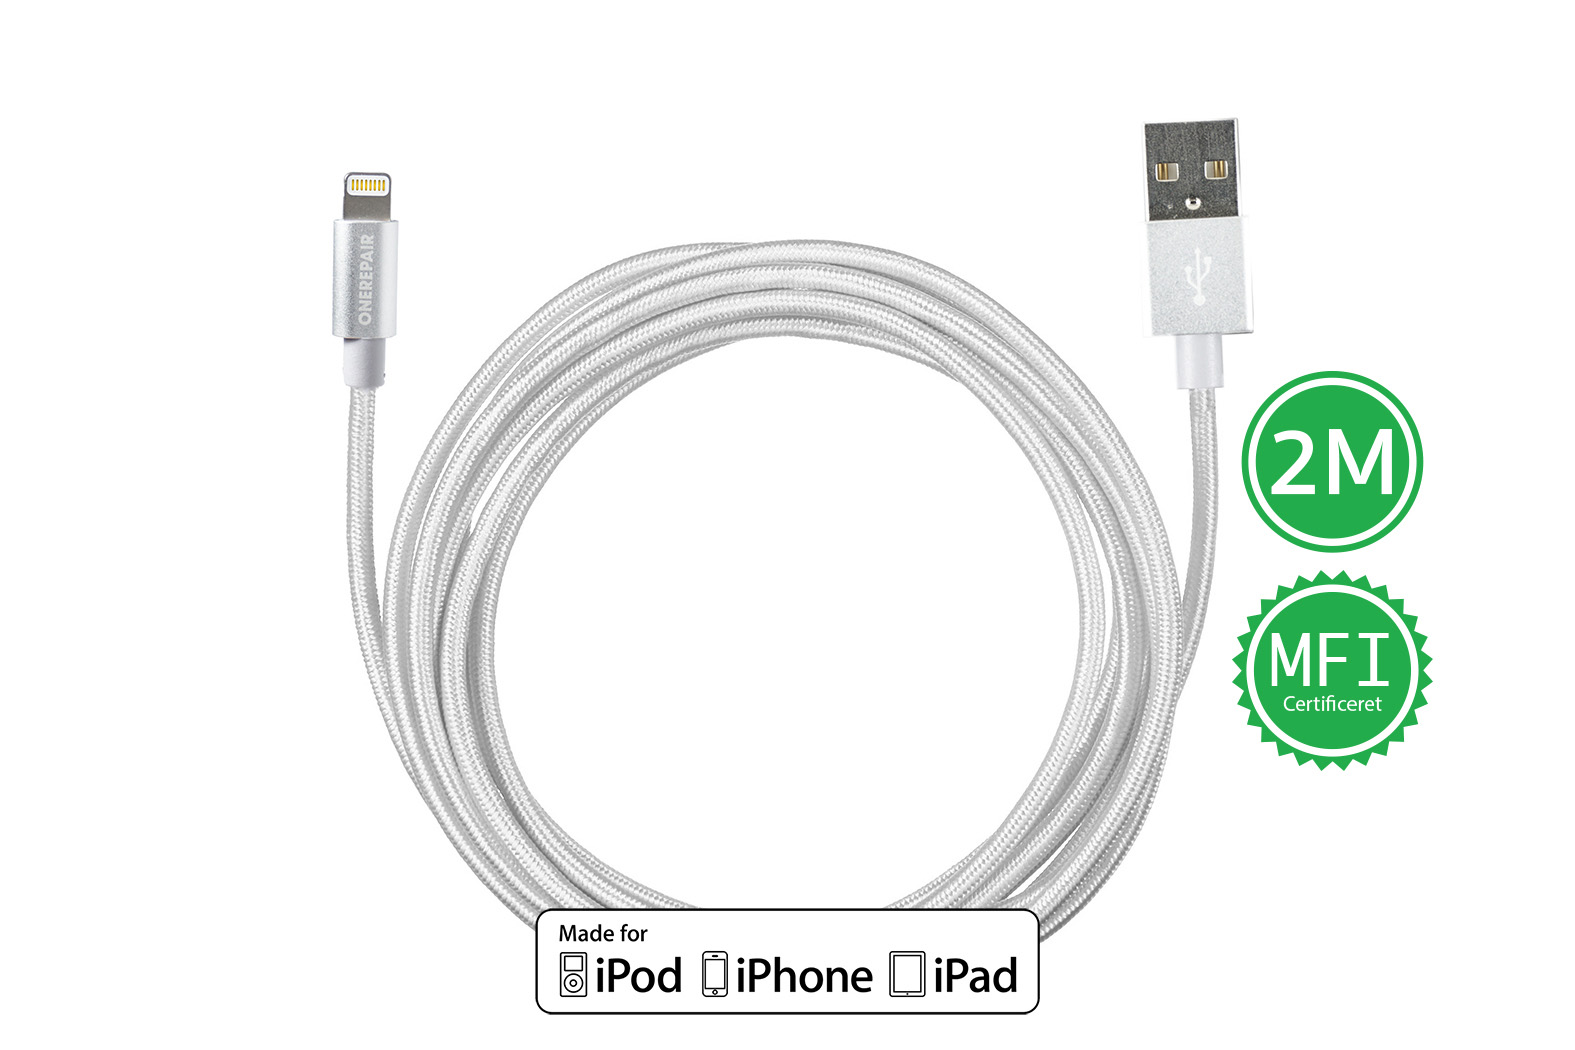 352084_OneRepair_Oplader_Kabel_Lightning_iPhone_Lader_Apple_Godkendt_Langt_2_Meter_Billigt_OneRepair_00001